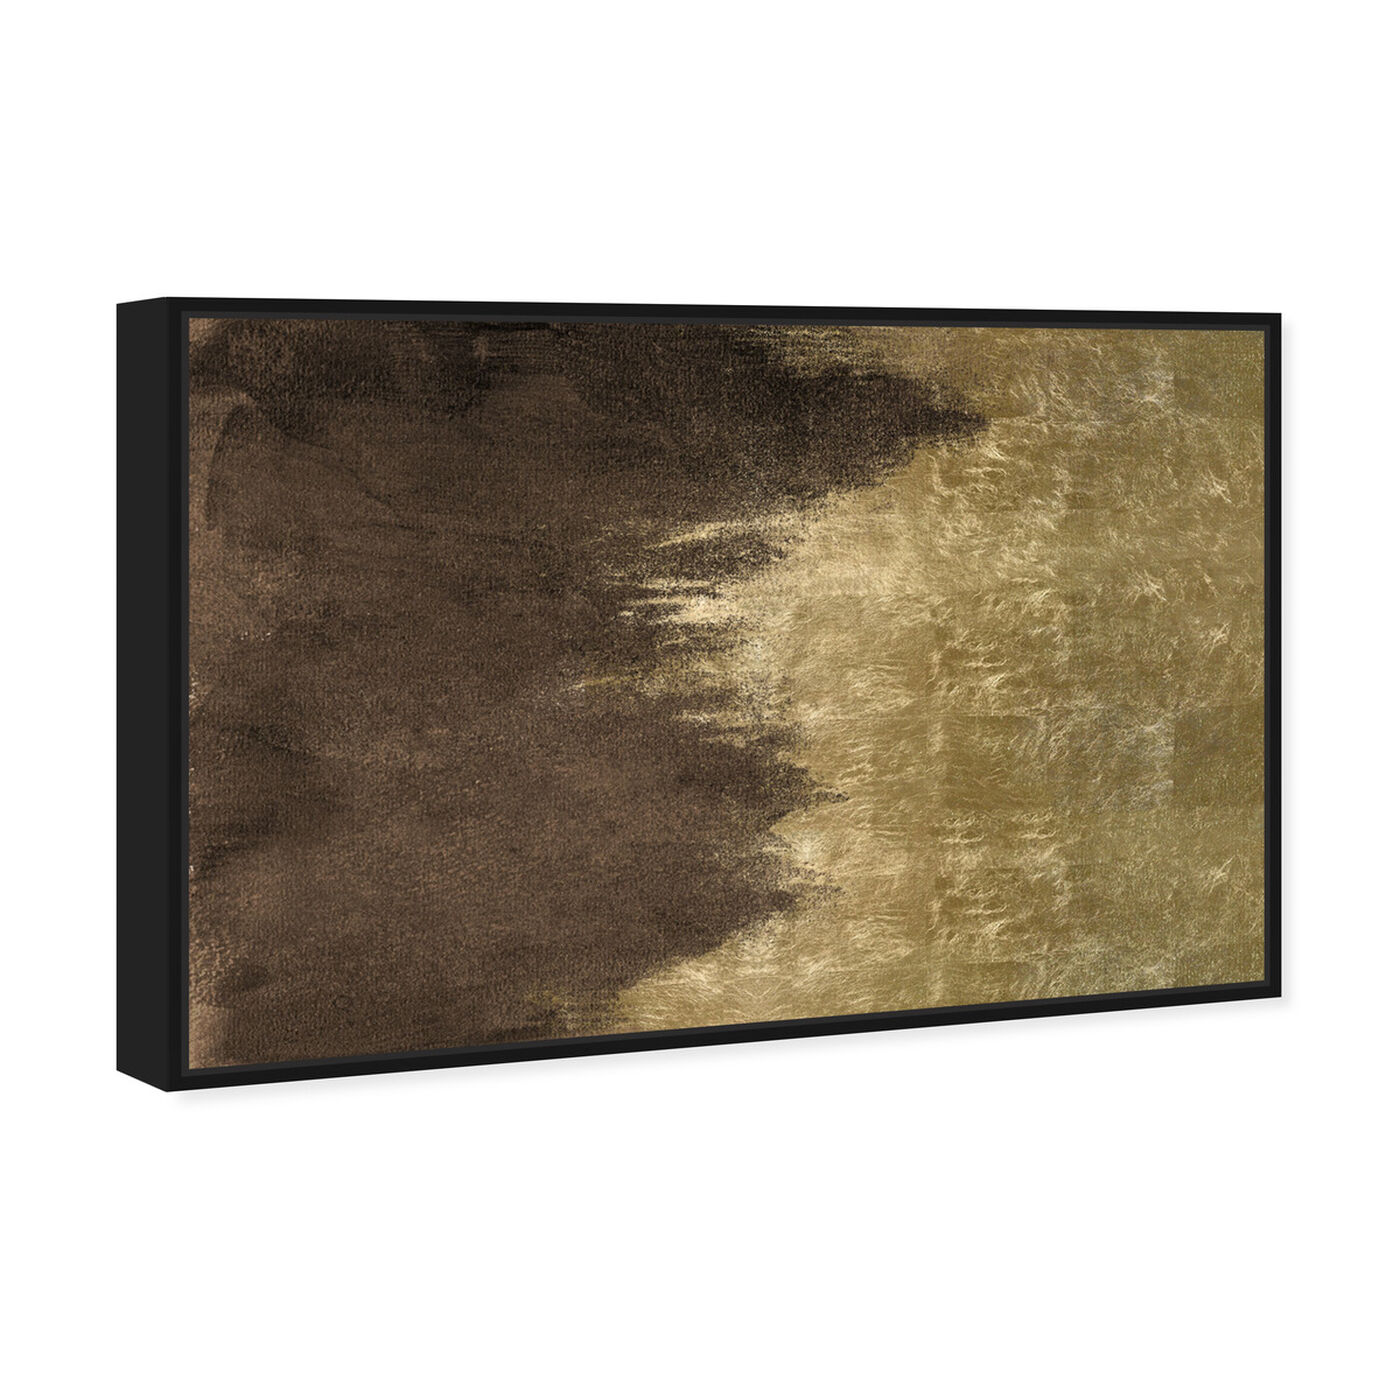 Angled view of Light Symphony in Brown featuring abstract and paint art.